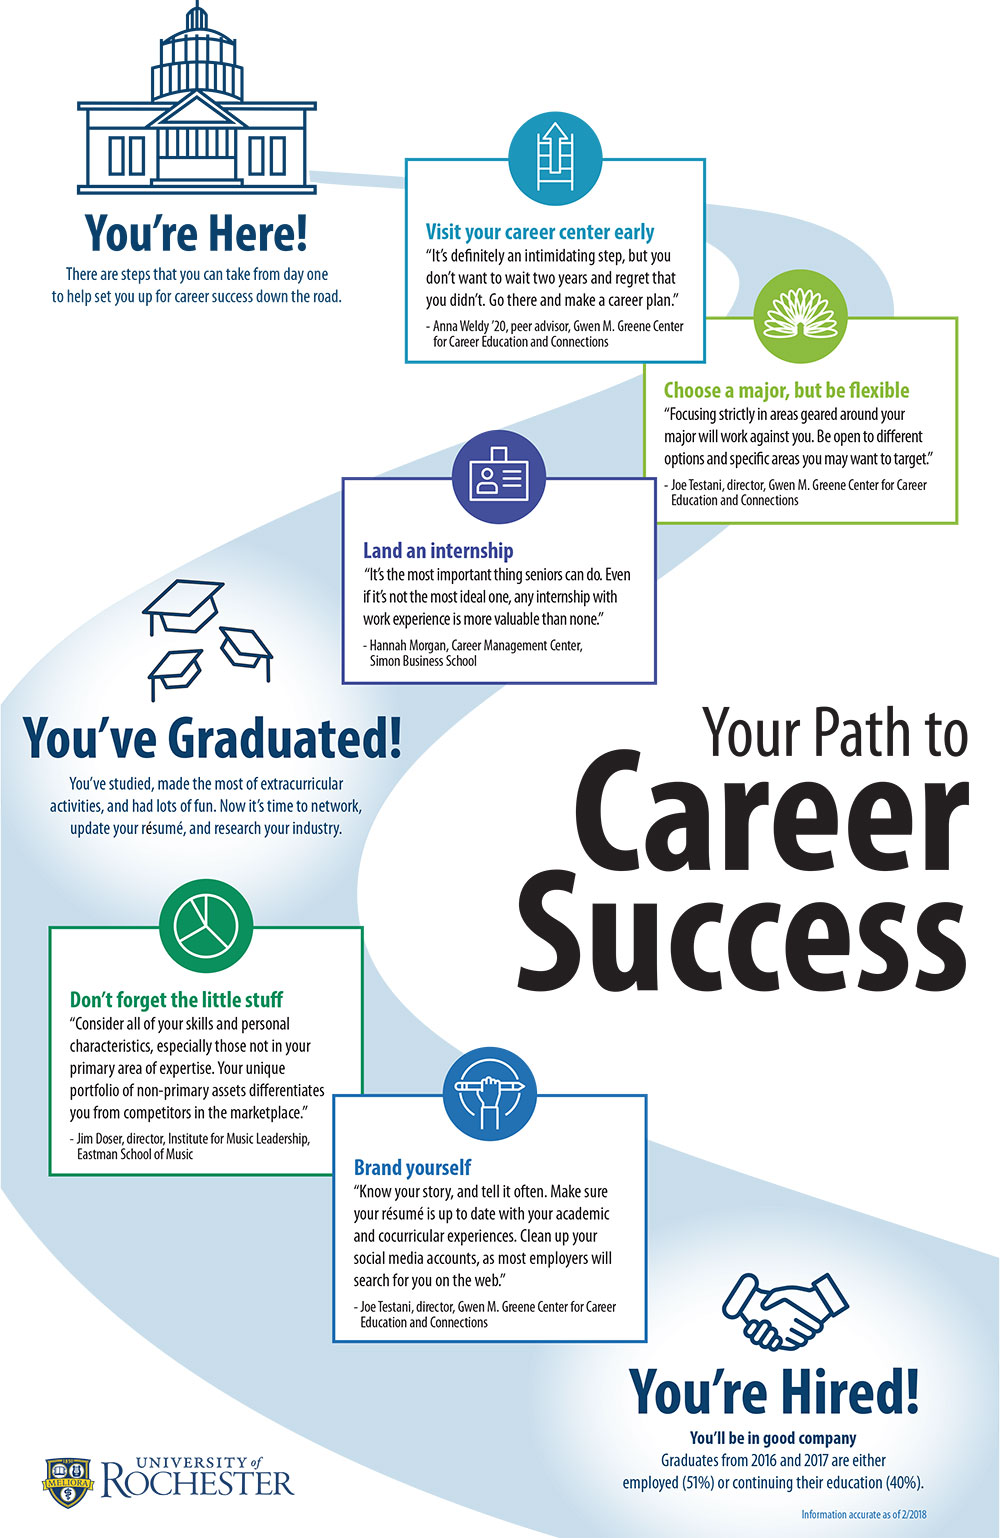 "infographic shows YOUR PATH TO CAREER SUCCESS, with stops on the page for ""You've Arrived,"" ""You've Graduated,"" and ""You're Hired."" Further steps along the path are: ""Visit your career center early,"" ""Choose a major, but be flexible,"" ""Land an internship,"" ""Don't forget the little stuff,"" and ""Brand yourself."" Final statistic reads, ""Graduates from 2017 and 2017 are either employed (50%) or continuing their education (40%)"